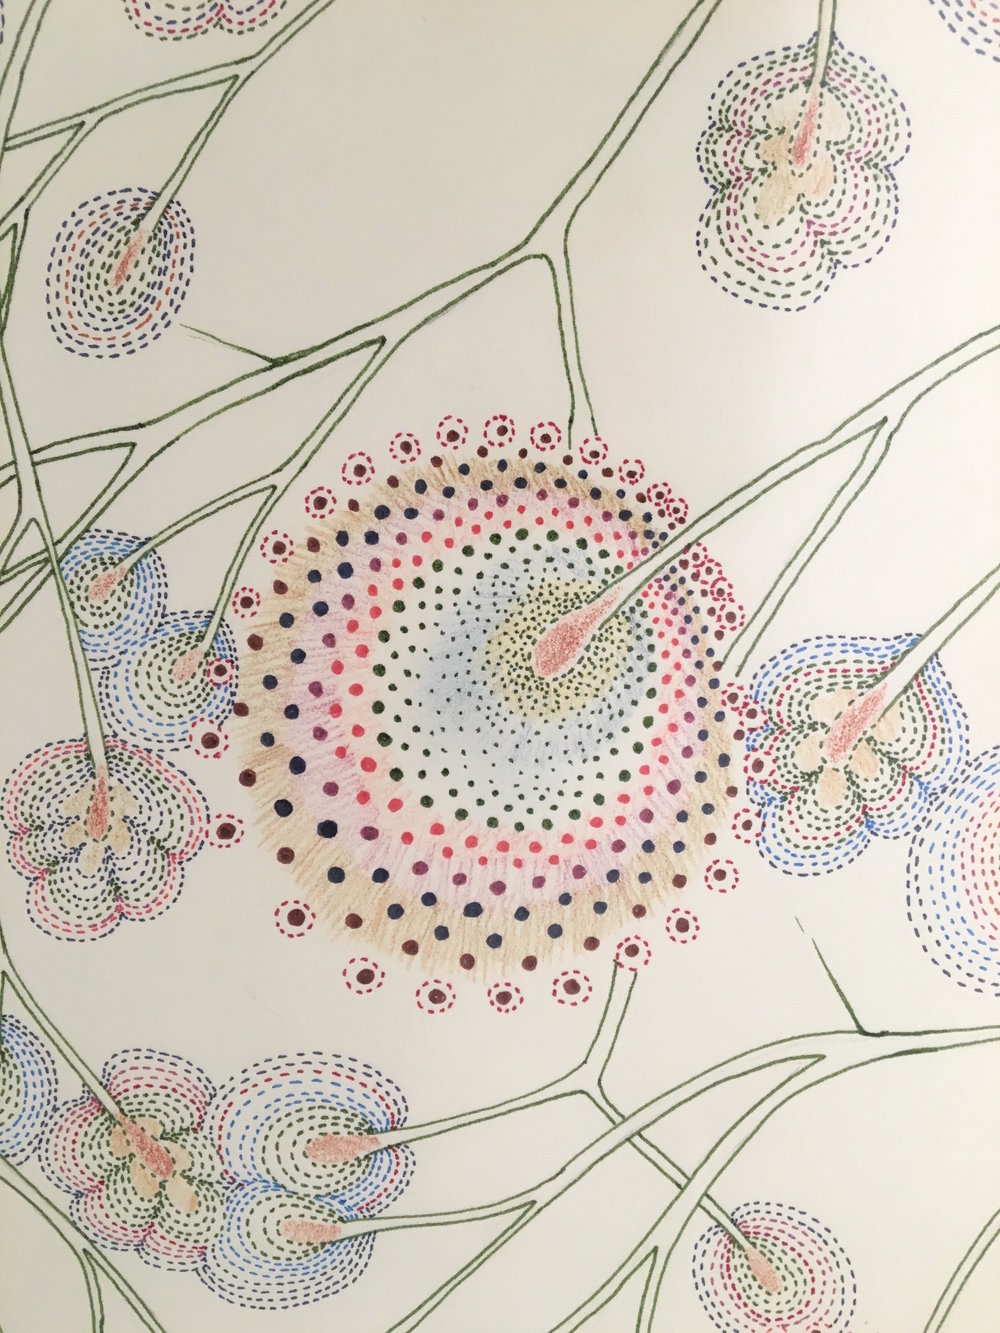 Sarah Morejohn,  Cracked Dandelion Tree  (detail), 2016, ink and colored pencil on paper, 30 x 22 inches (unframed), $1600. (framed)